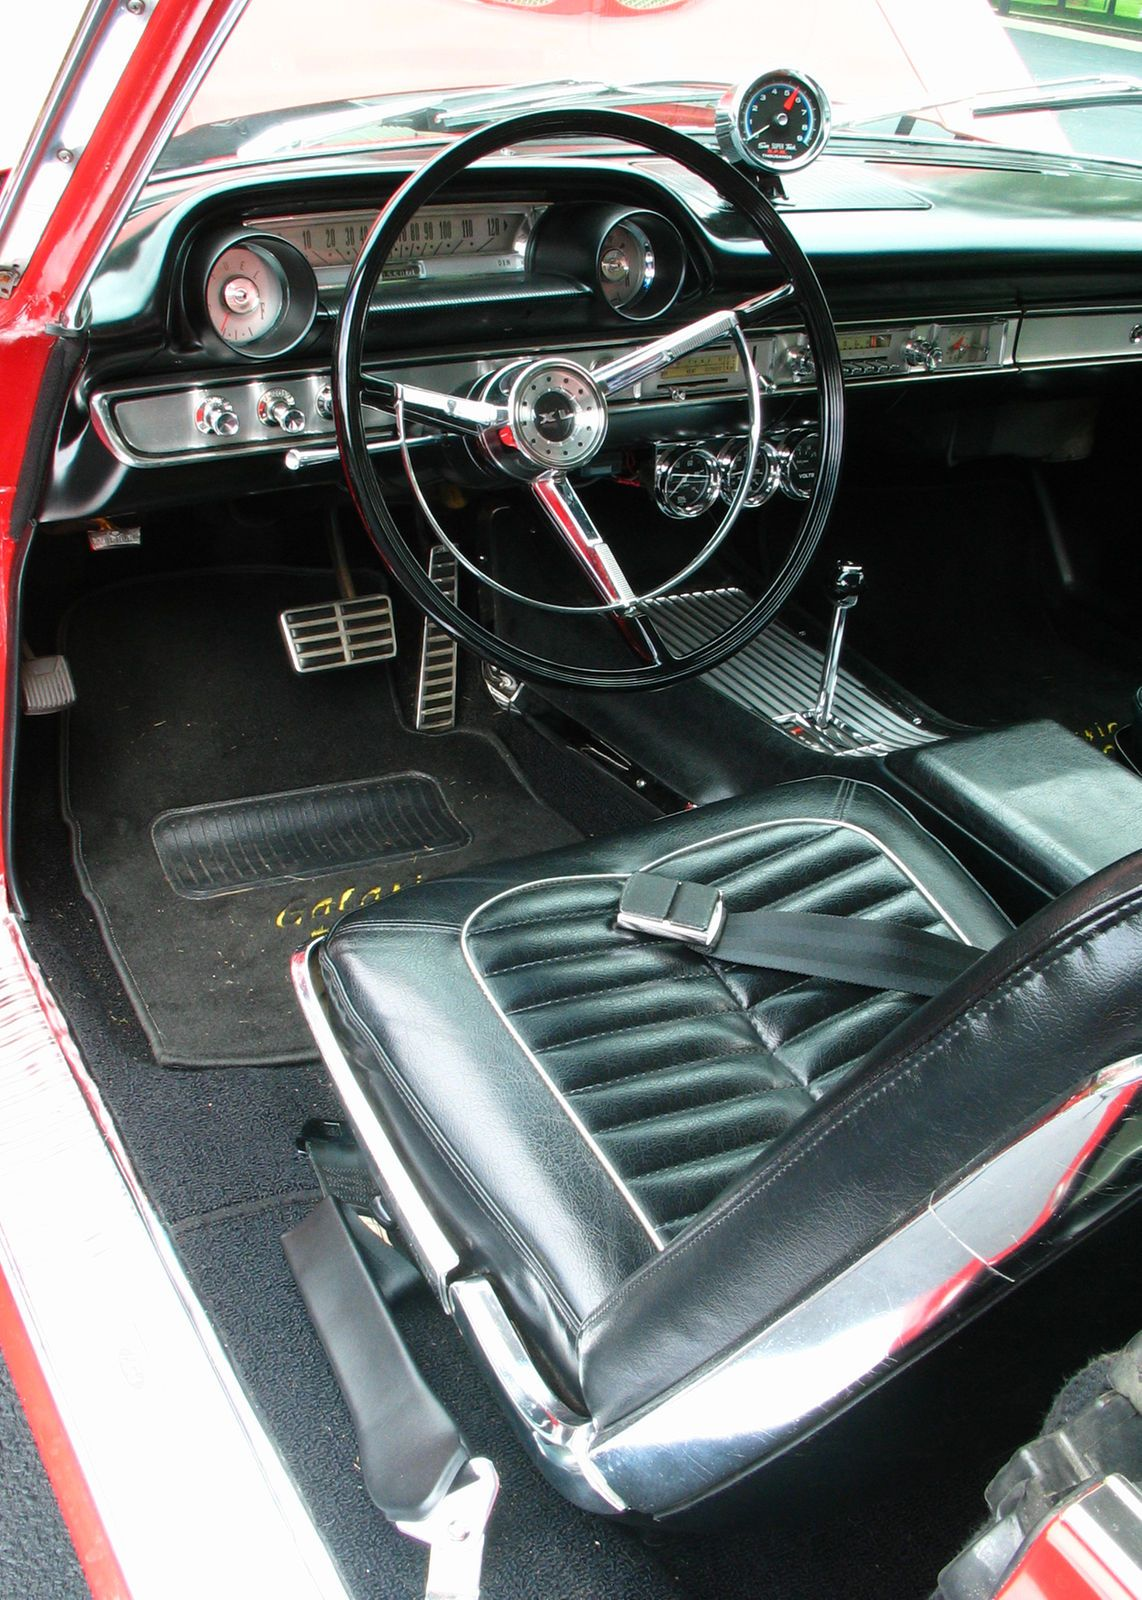 Jerry Ostalecki S 1964 Ford Galaxie 500xl Is An Engine Swap Car Just The Way You D Find Many If Not Most Serious Bou Ford Galaxie 1964 Ford Ford Galaxie 500